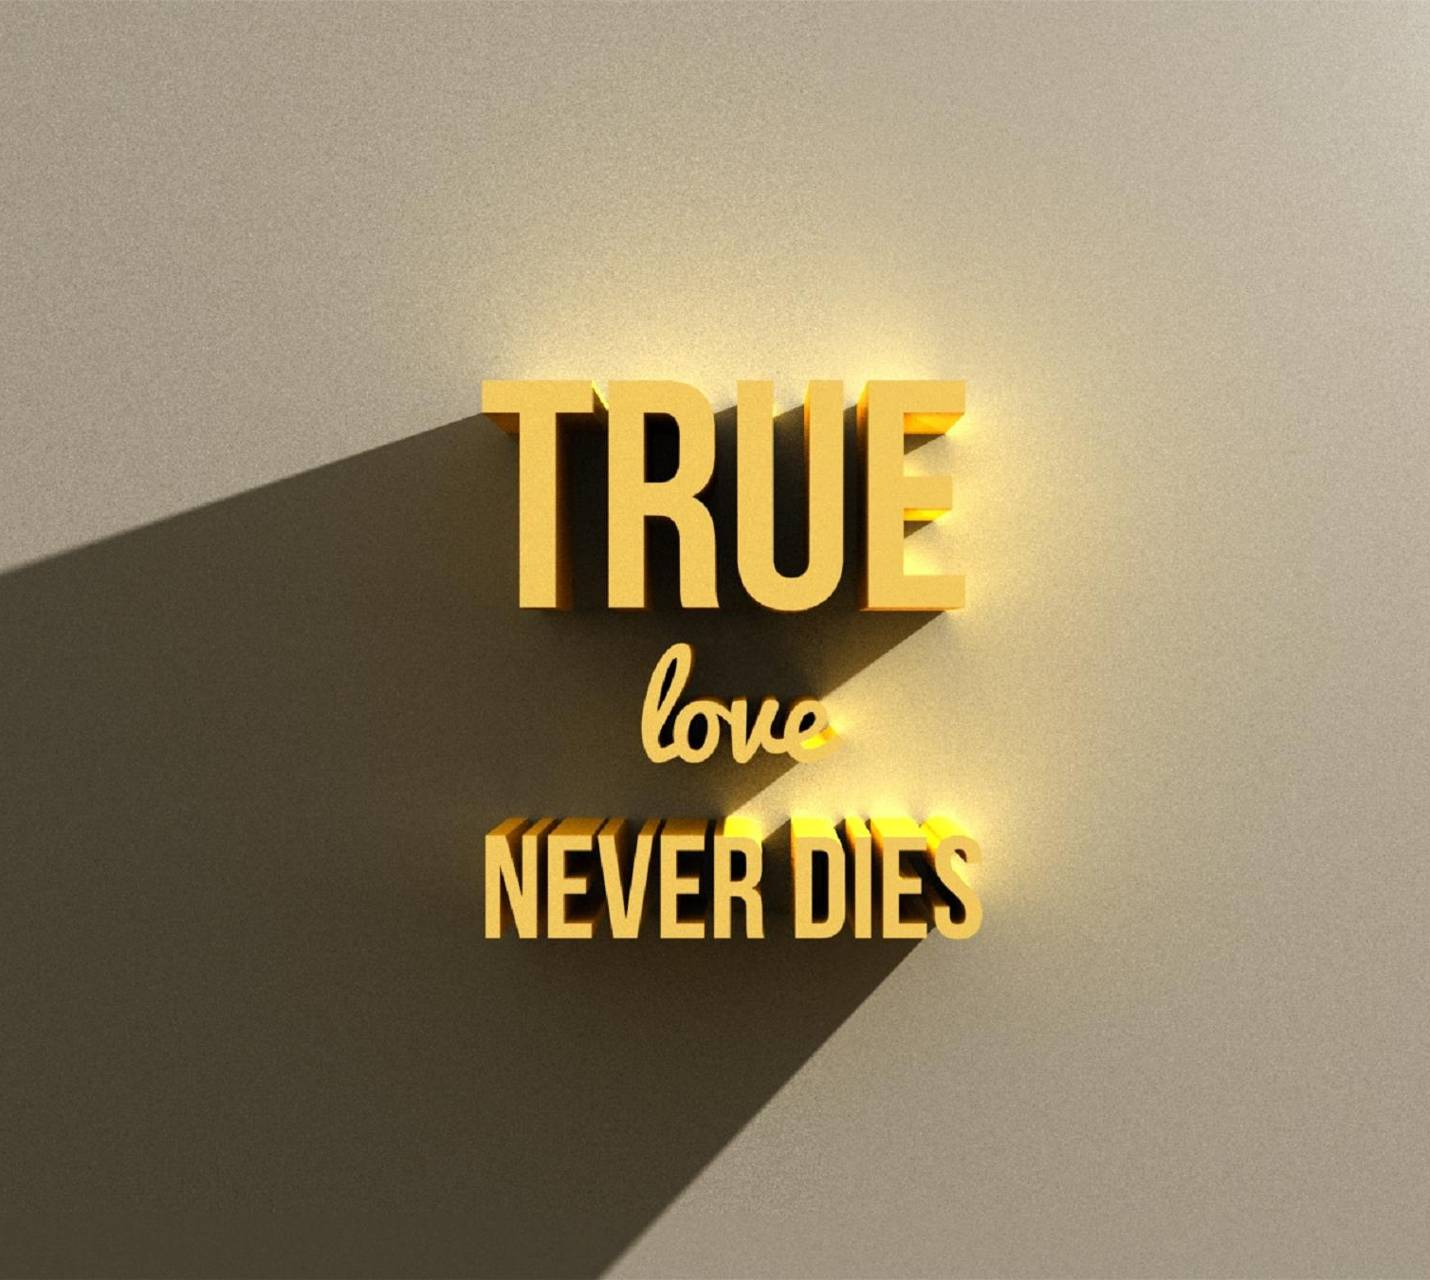 True Love Never Dies Wallpaper By Jutt4lyfe E4 Free On Zedge